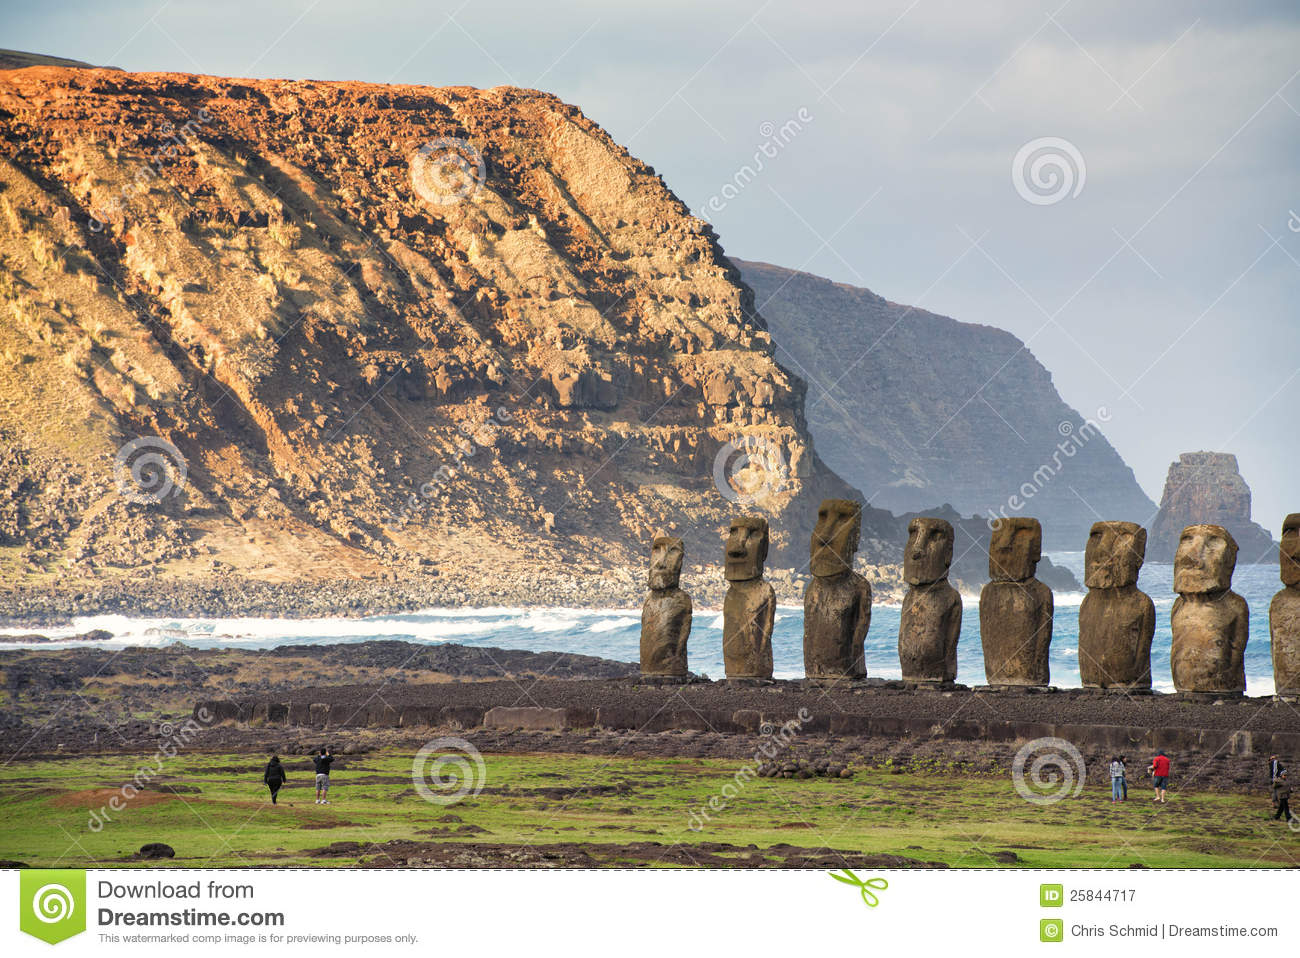 exploring the mysteries hidden on easter island Explore some of the world's most enigmatic places: stonehenge and easter island search write a mysterious & unexplained story.